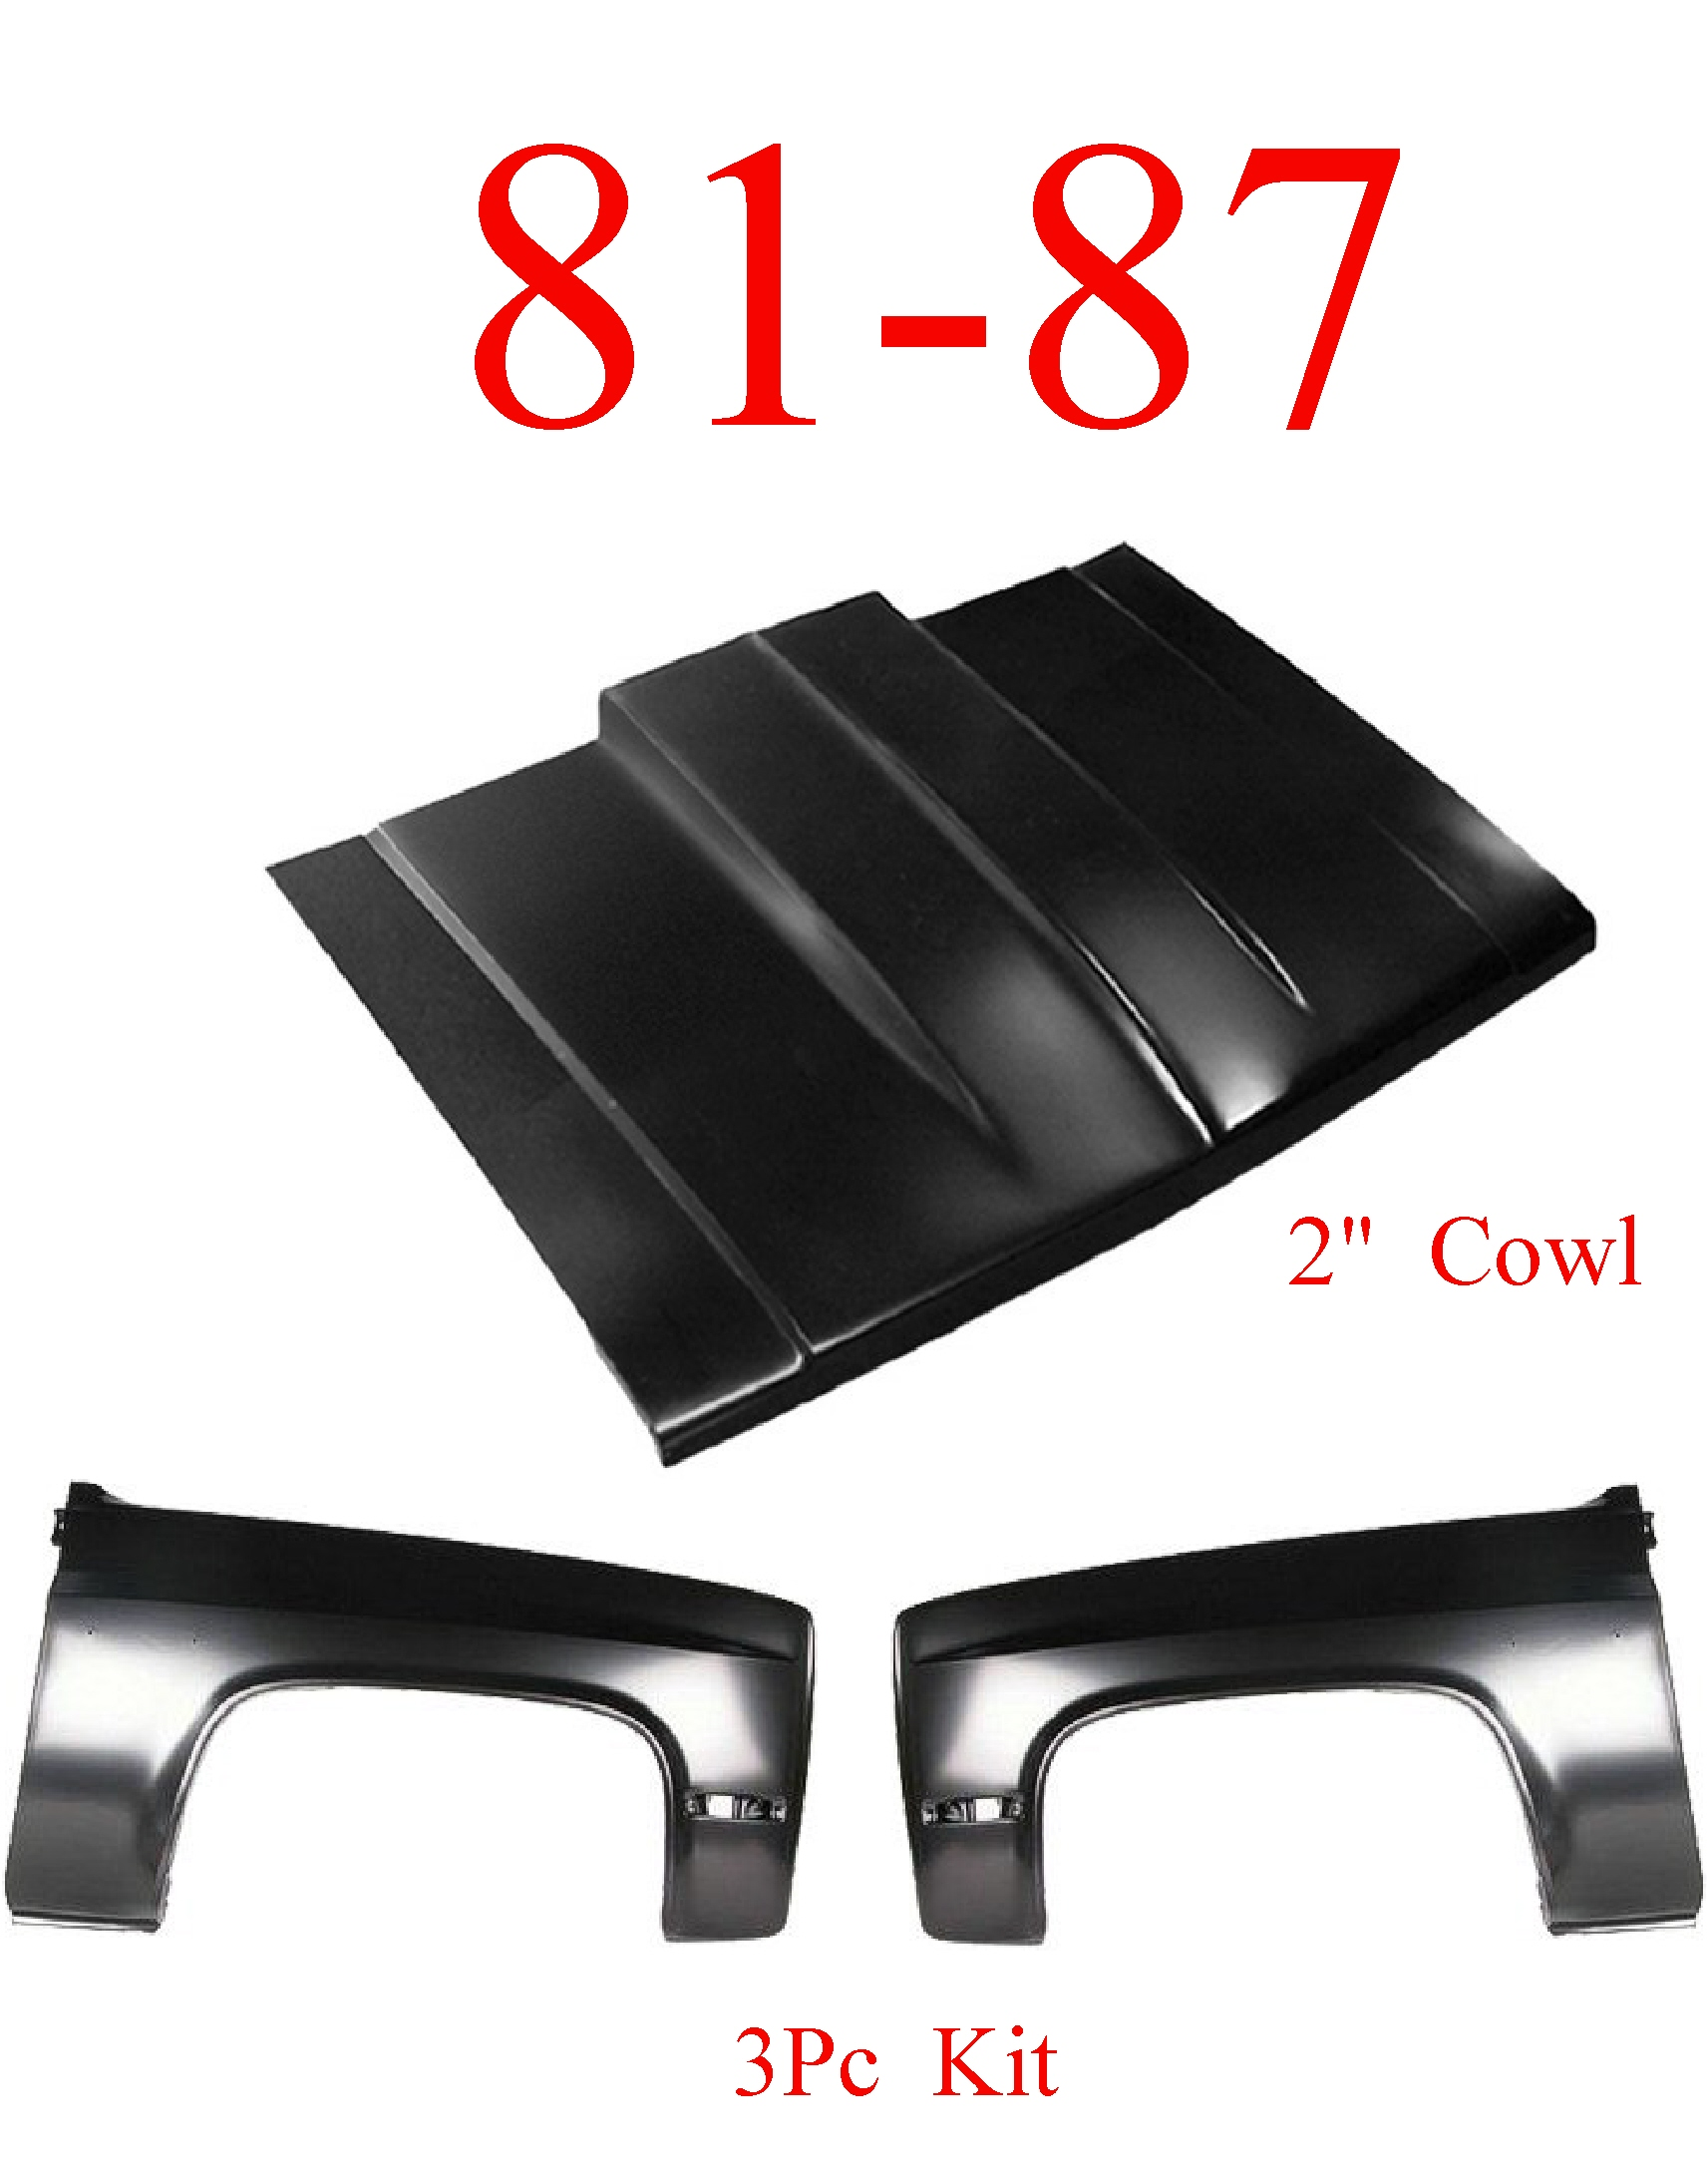 "81-87 3Pc Cowl Hood 2"" & Fender Set"